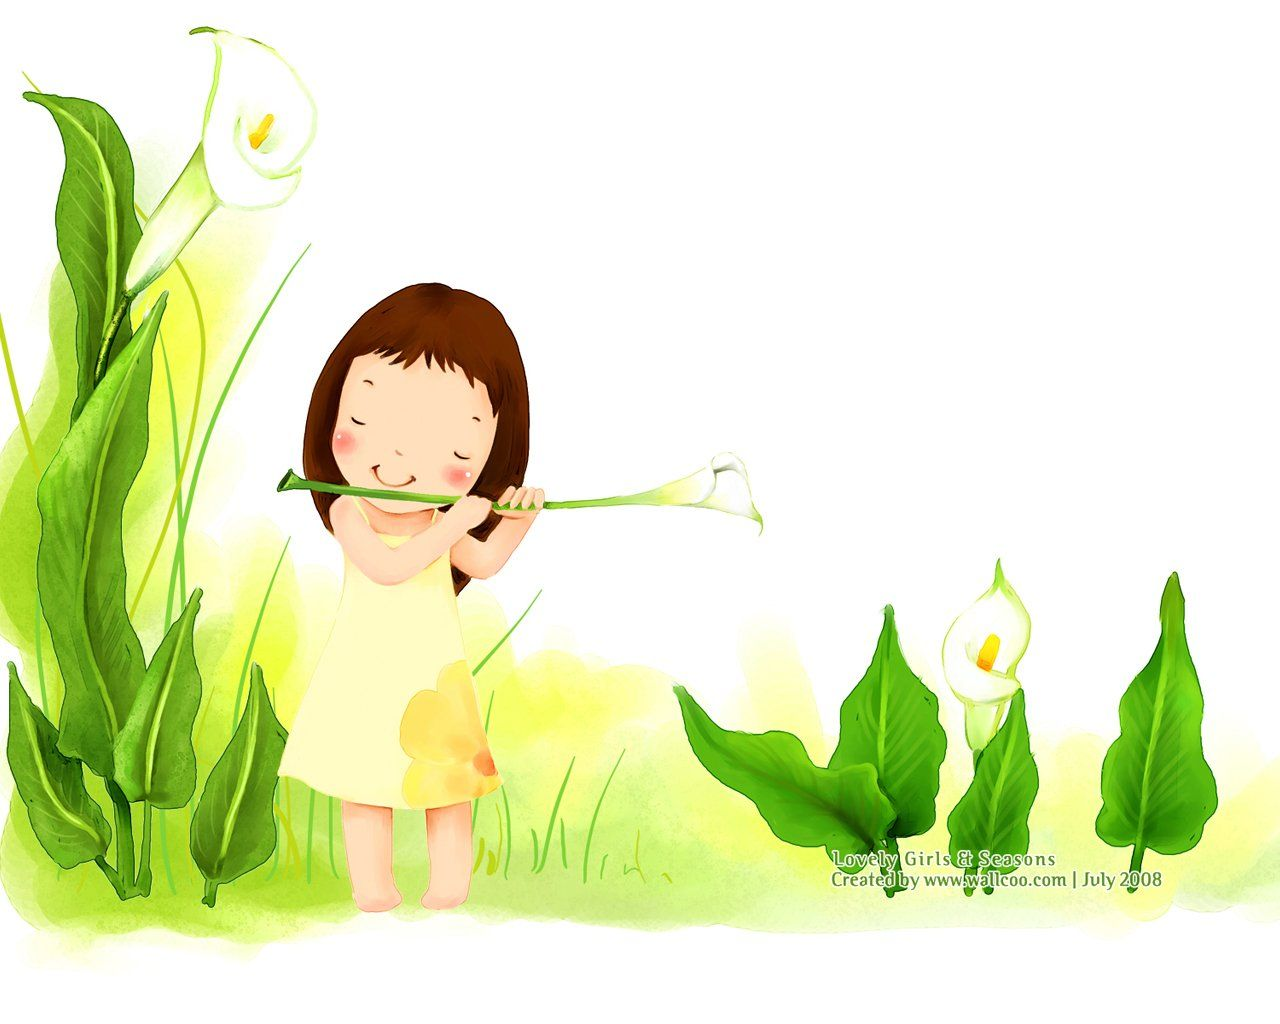 Kim Jong Bok IllustrationsVol05 Sweet Childhood Lovely Girl